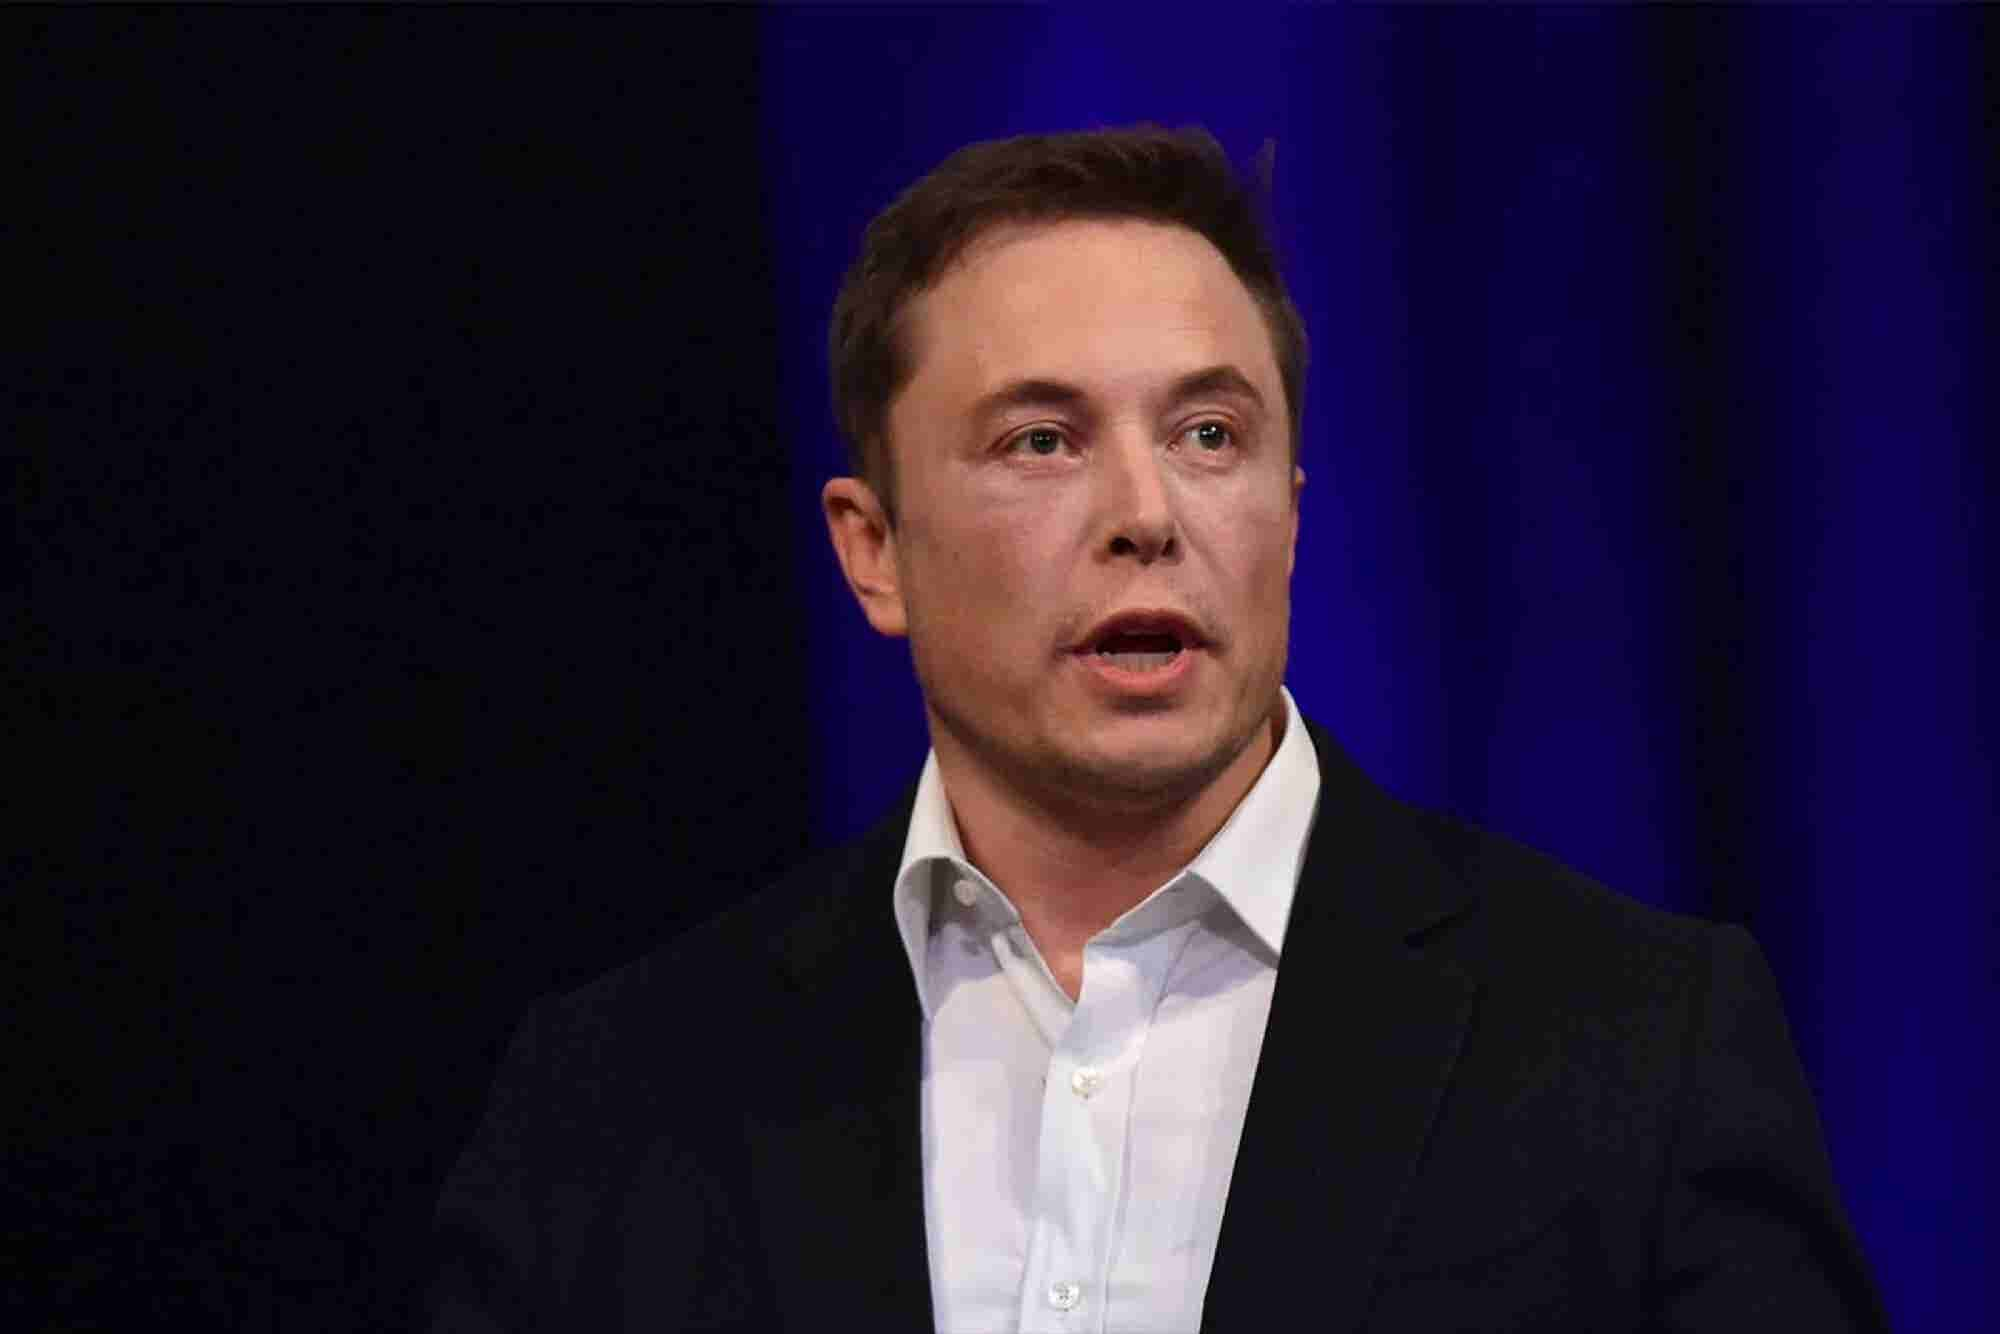 Elon Musk Is Sending Teams to Assist With the Thailand Cave Rescue